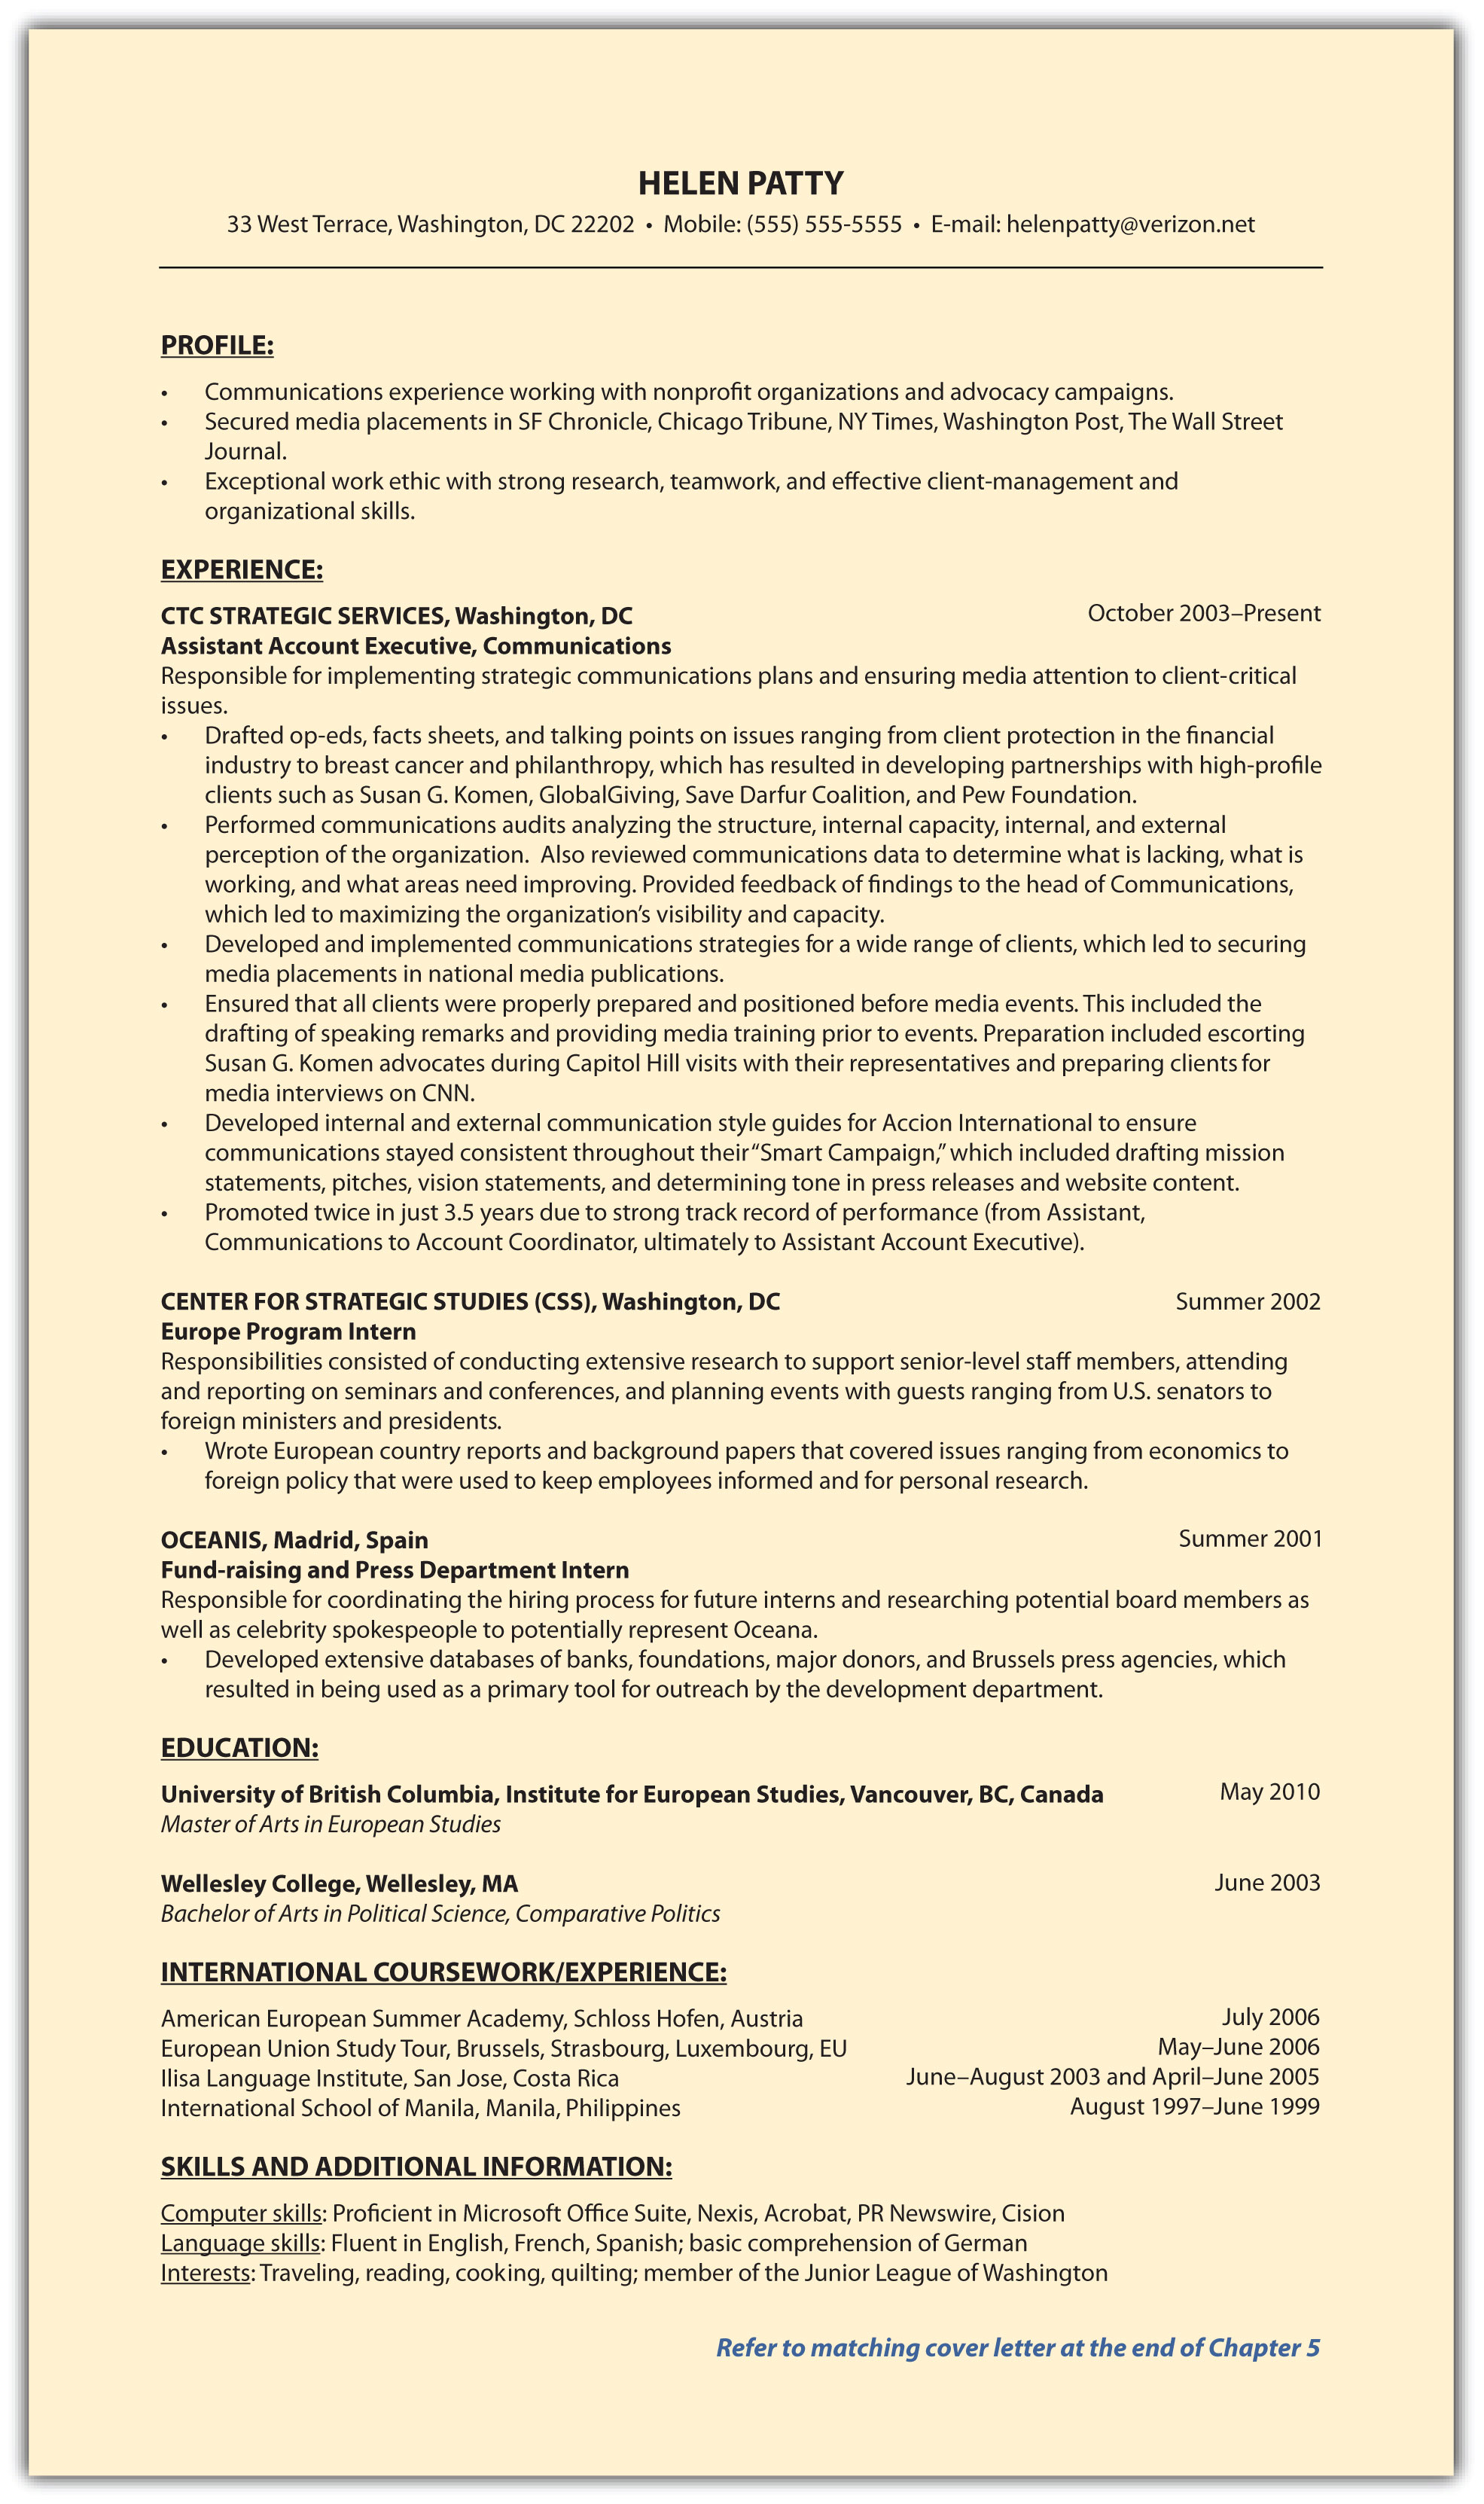 functional resume advantages professional resume cover letter sample functional resume advantages the disadvantages of a functional resume chron step 2 create a compelling marketing